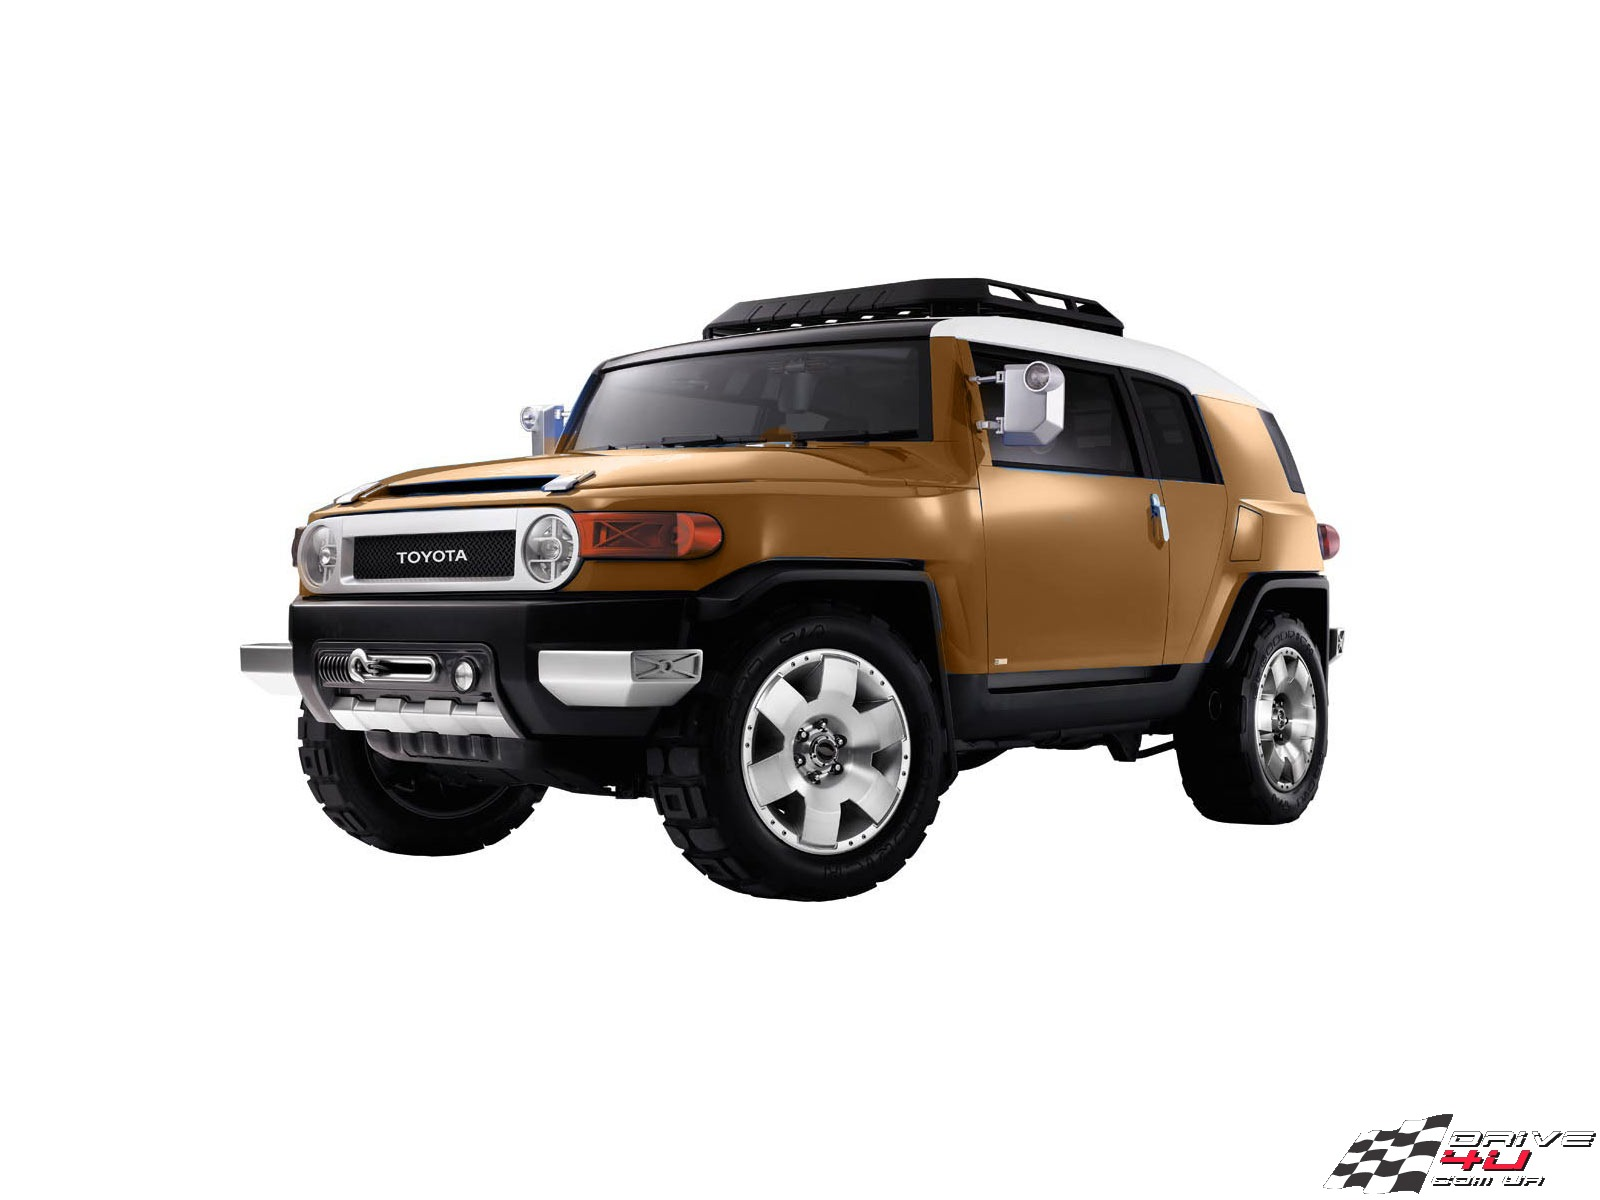 2019 Toyota FJ Cruiser Concept photo - 1